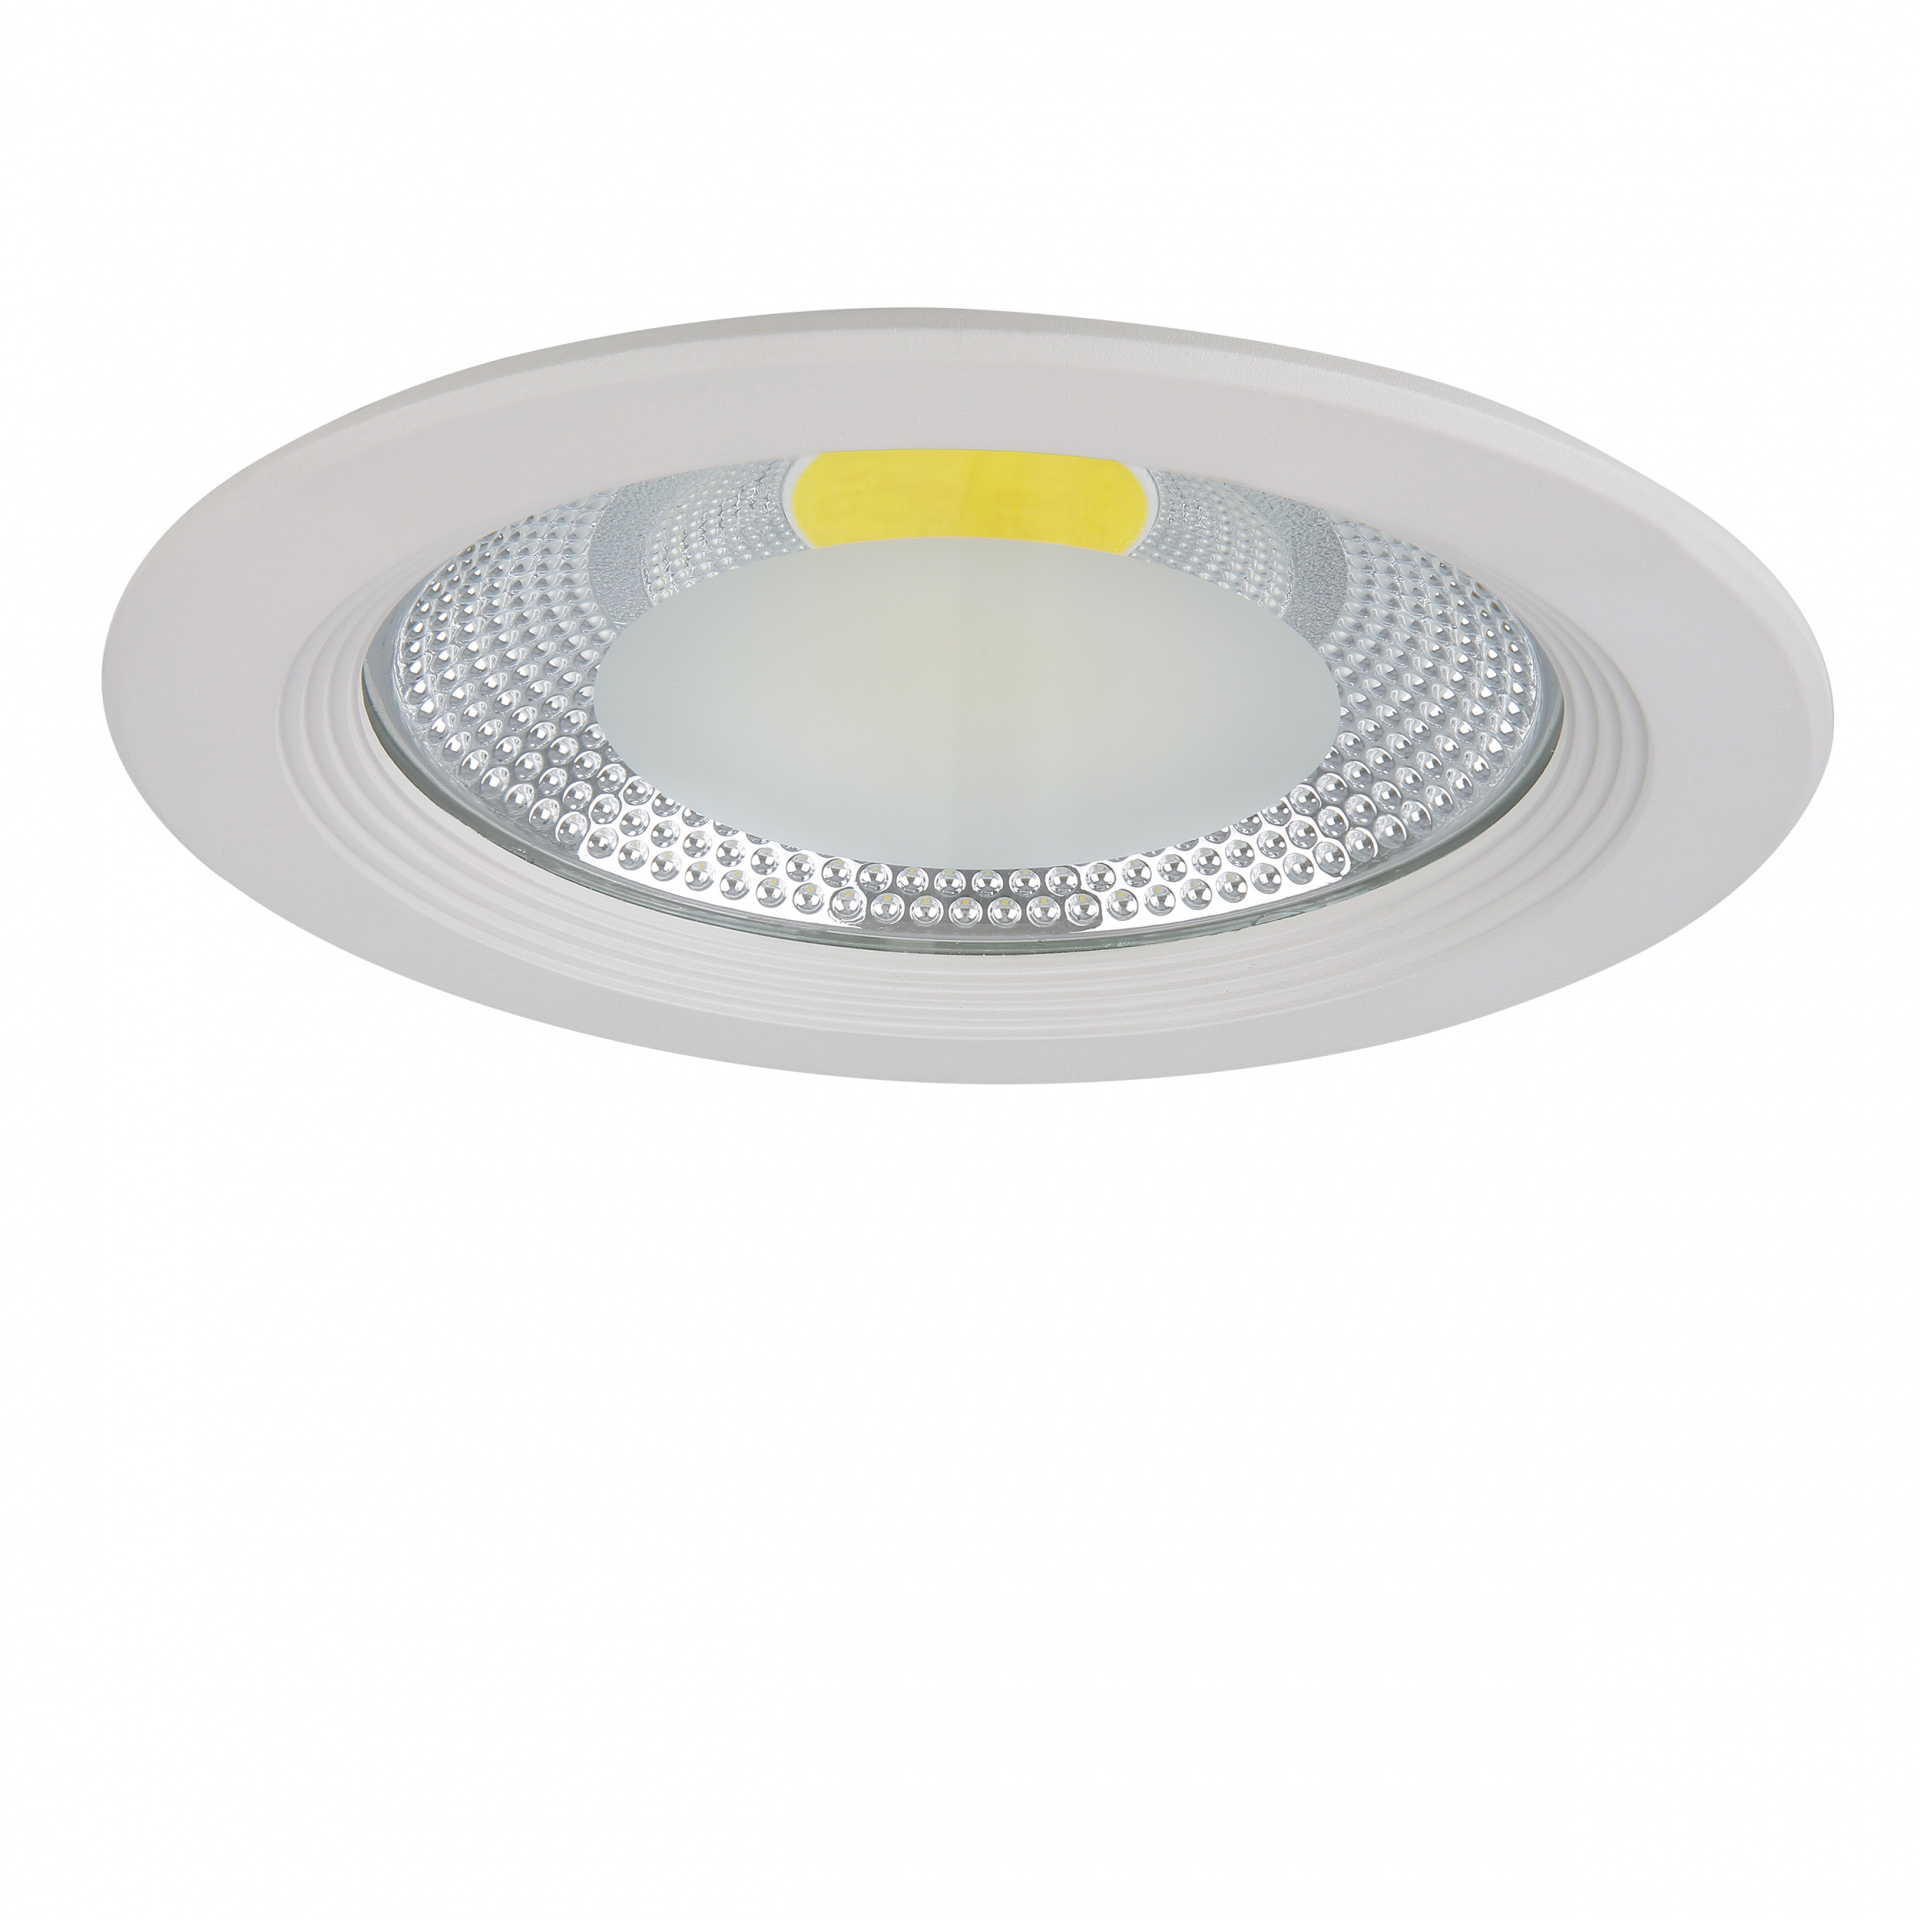 Светильник Forto LED 20W 1900LM 55G 3000K Lightstar 223202